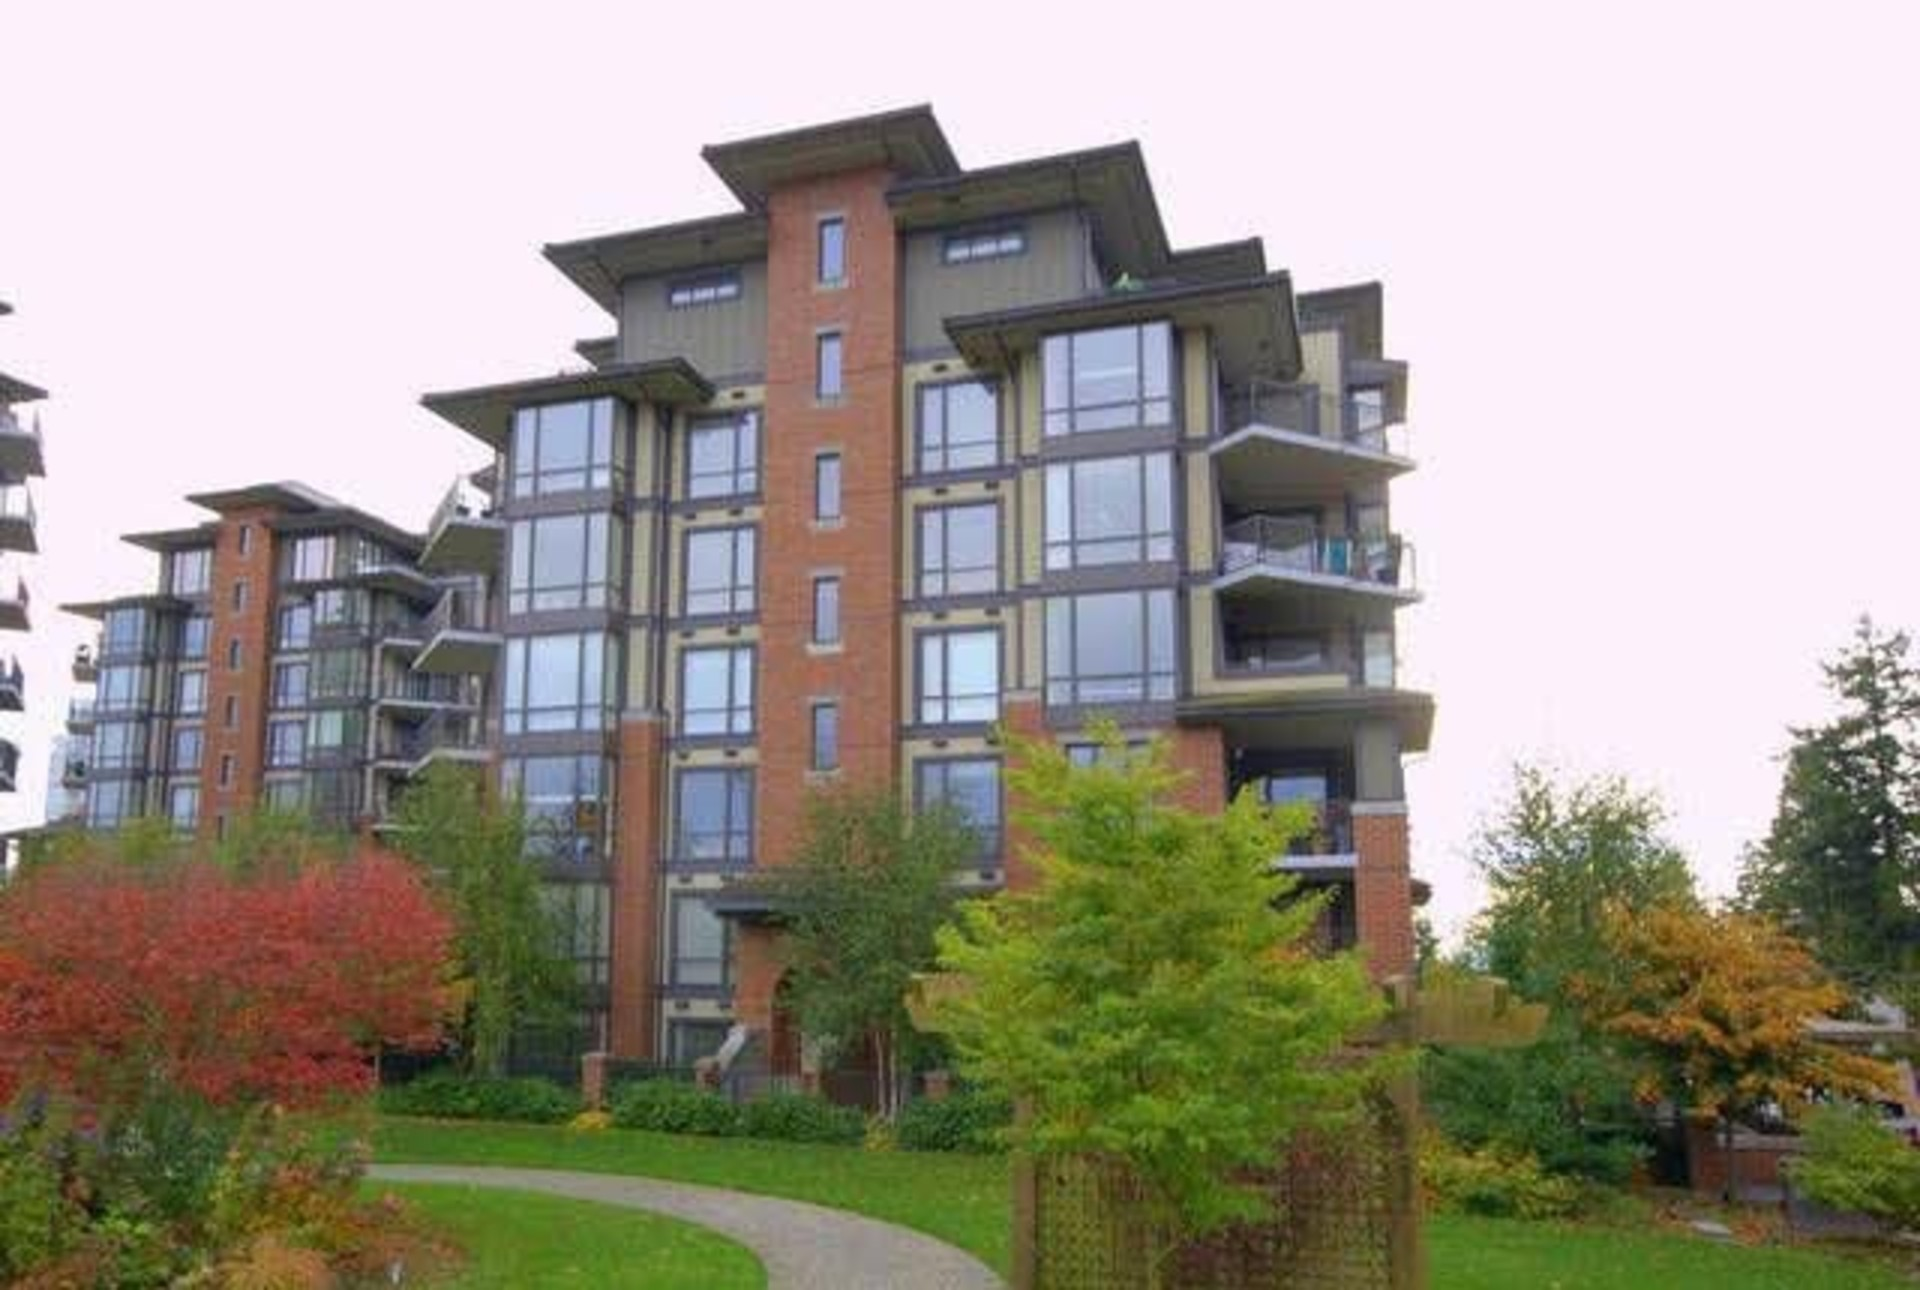 259751308 at 203 - 1580 Martin Street, White Rock, South Surrey White Rock